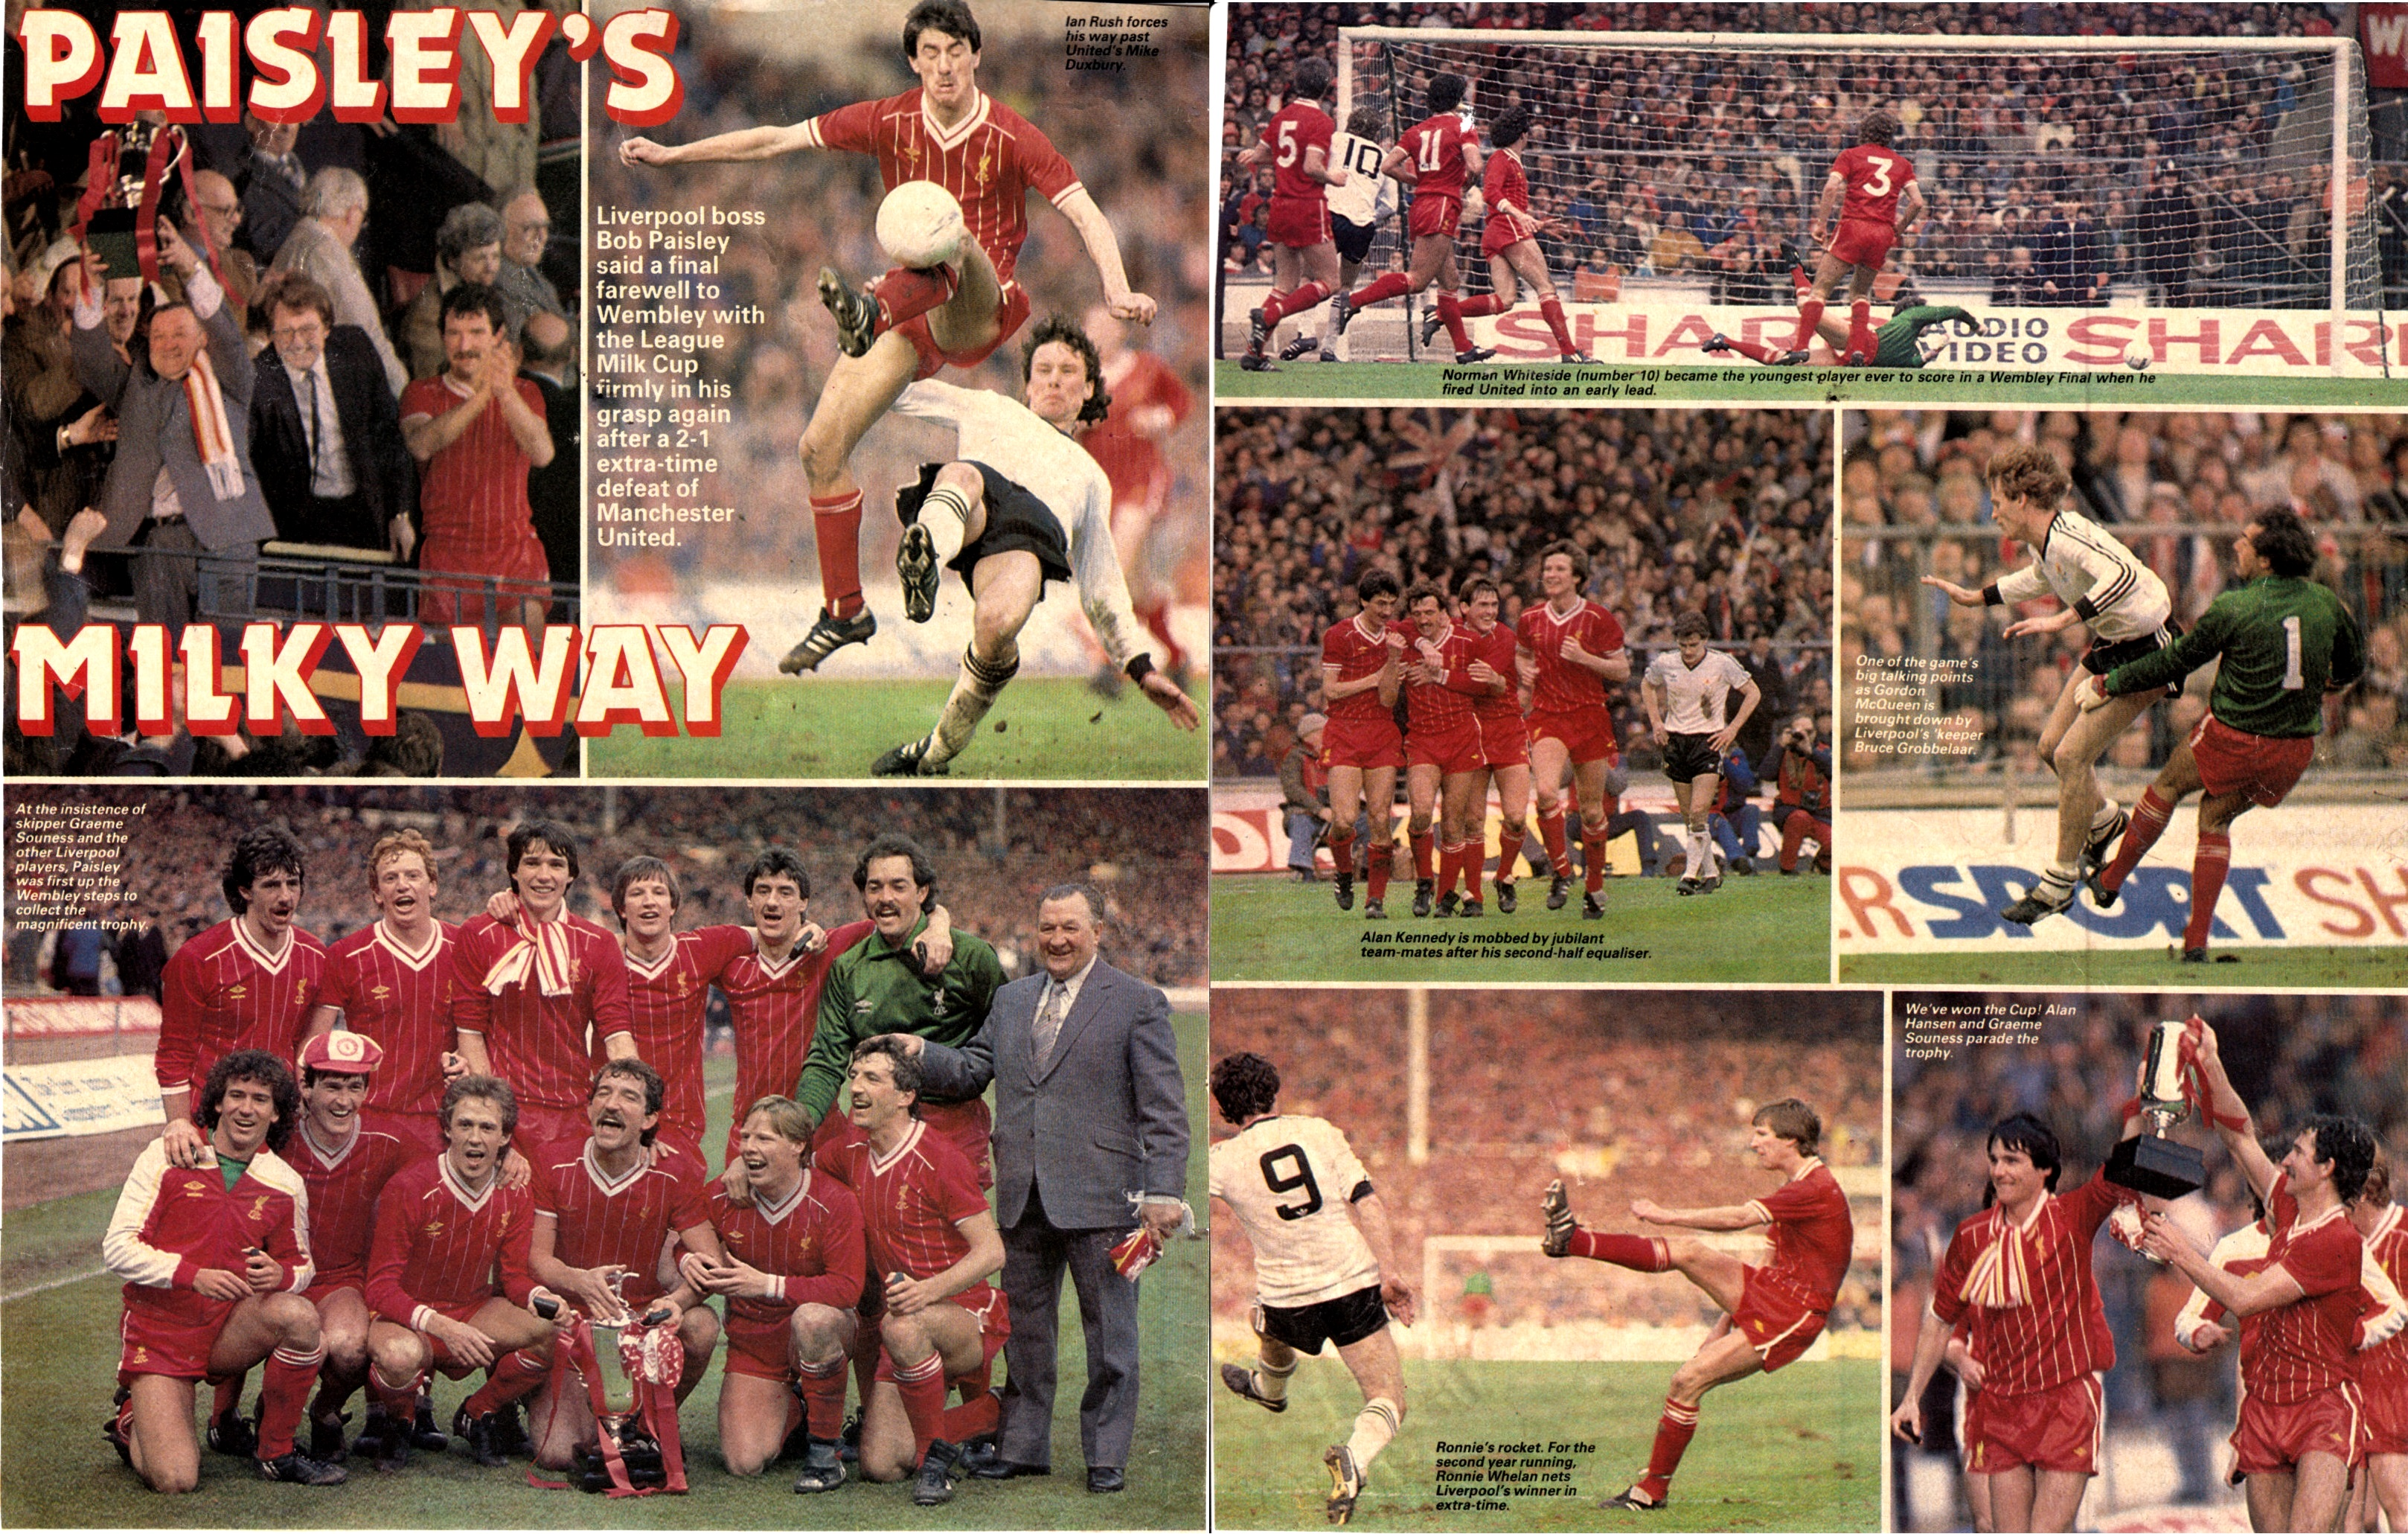 Paisley's Milky Way - League Cup win 1983